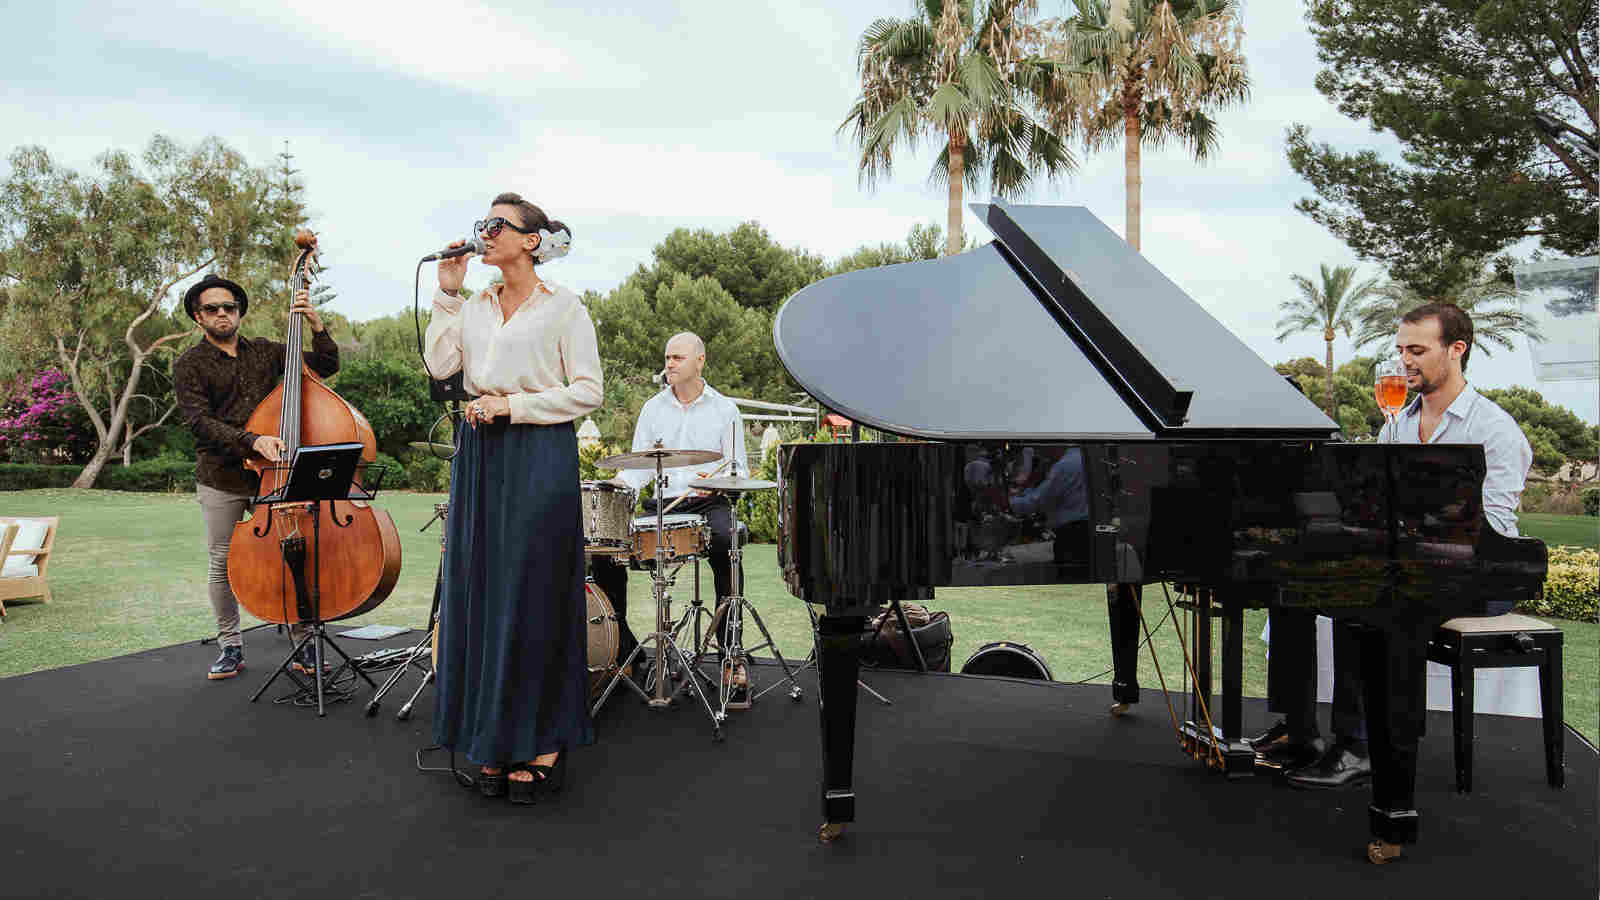 Live music concert at The St. Regis Mardavall Majorca